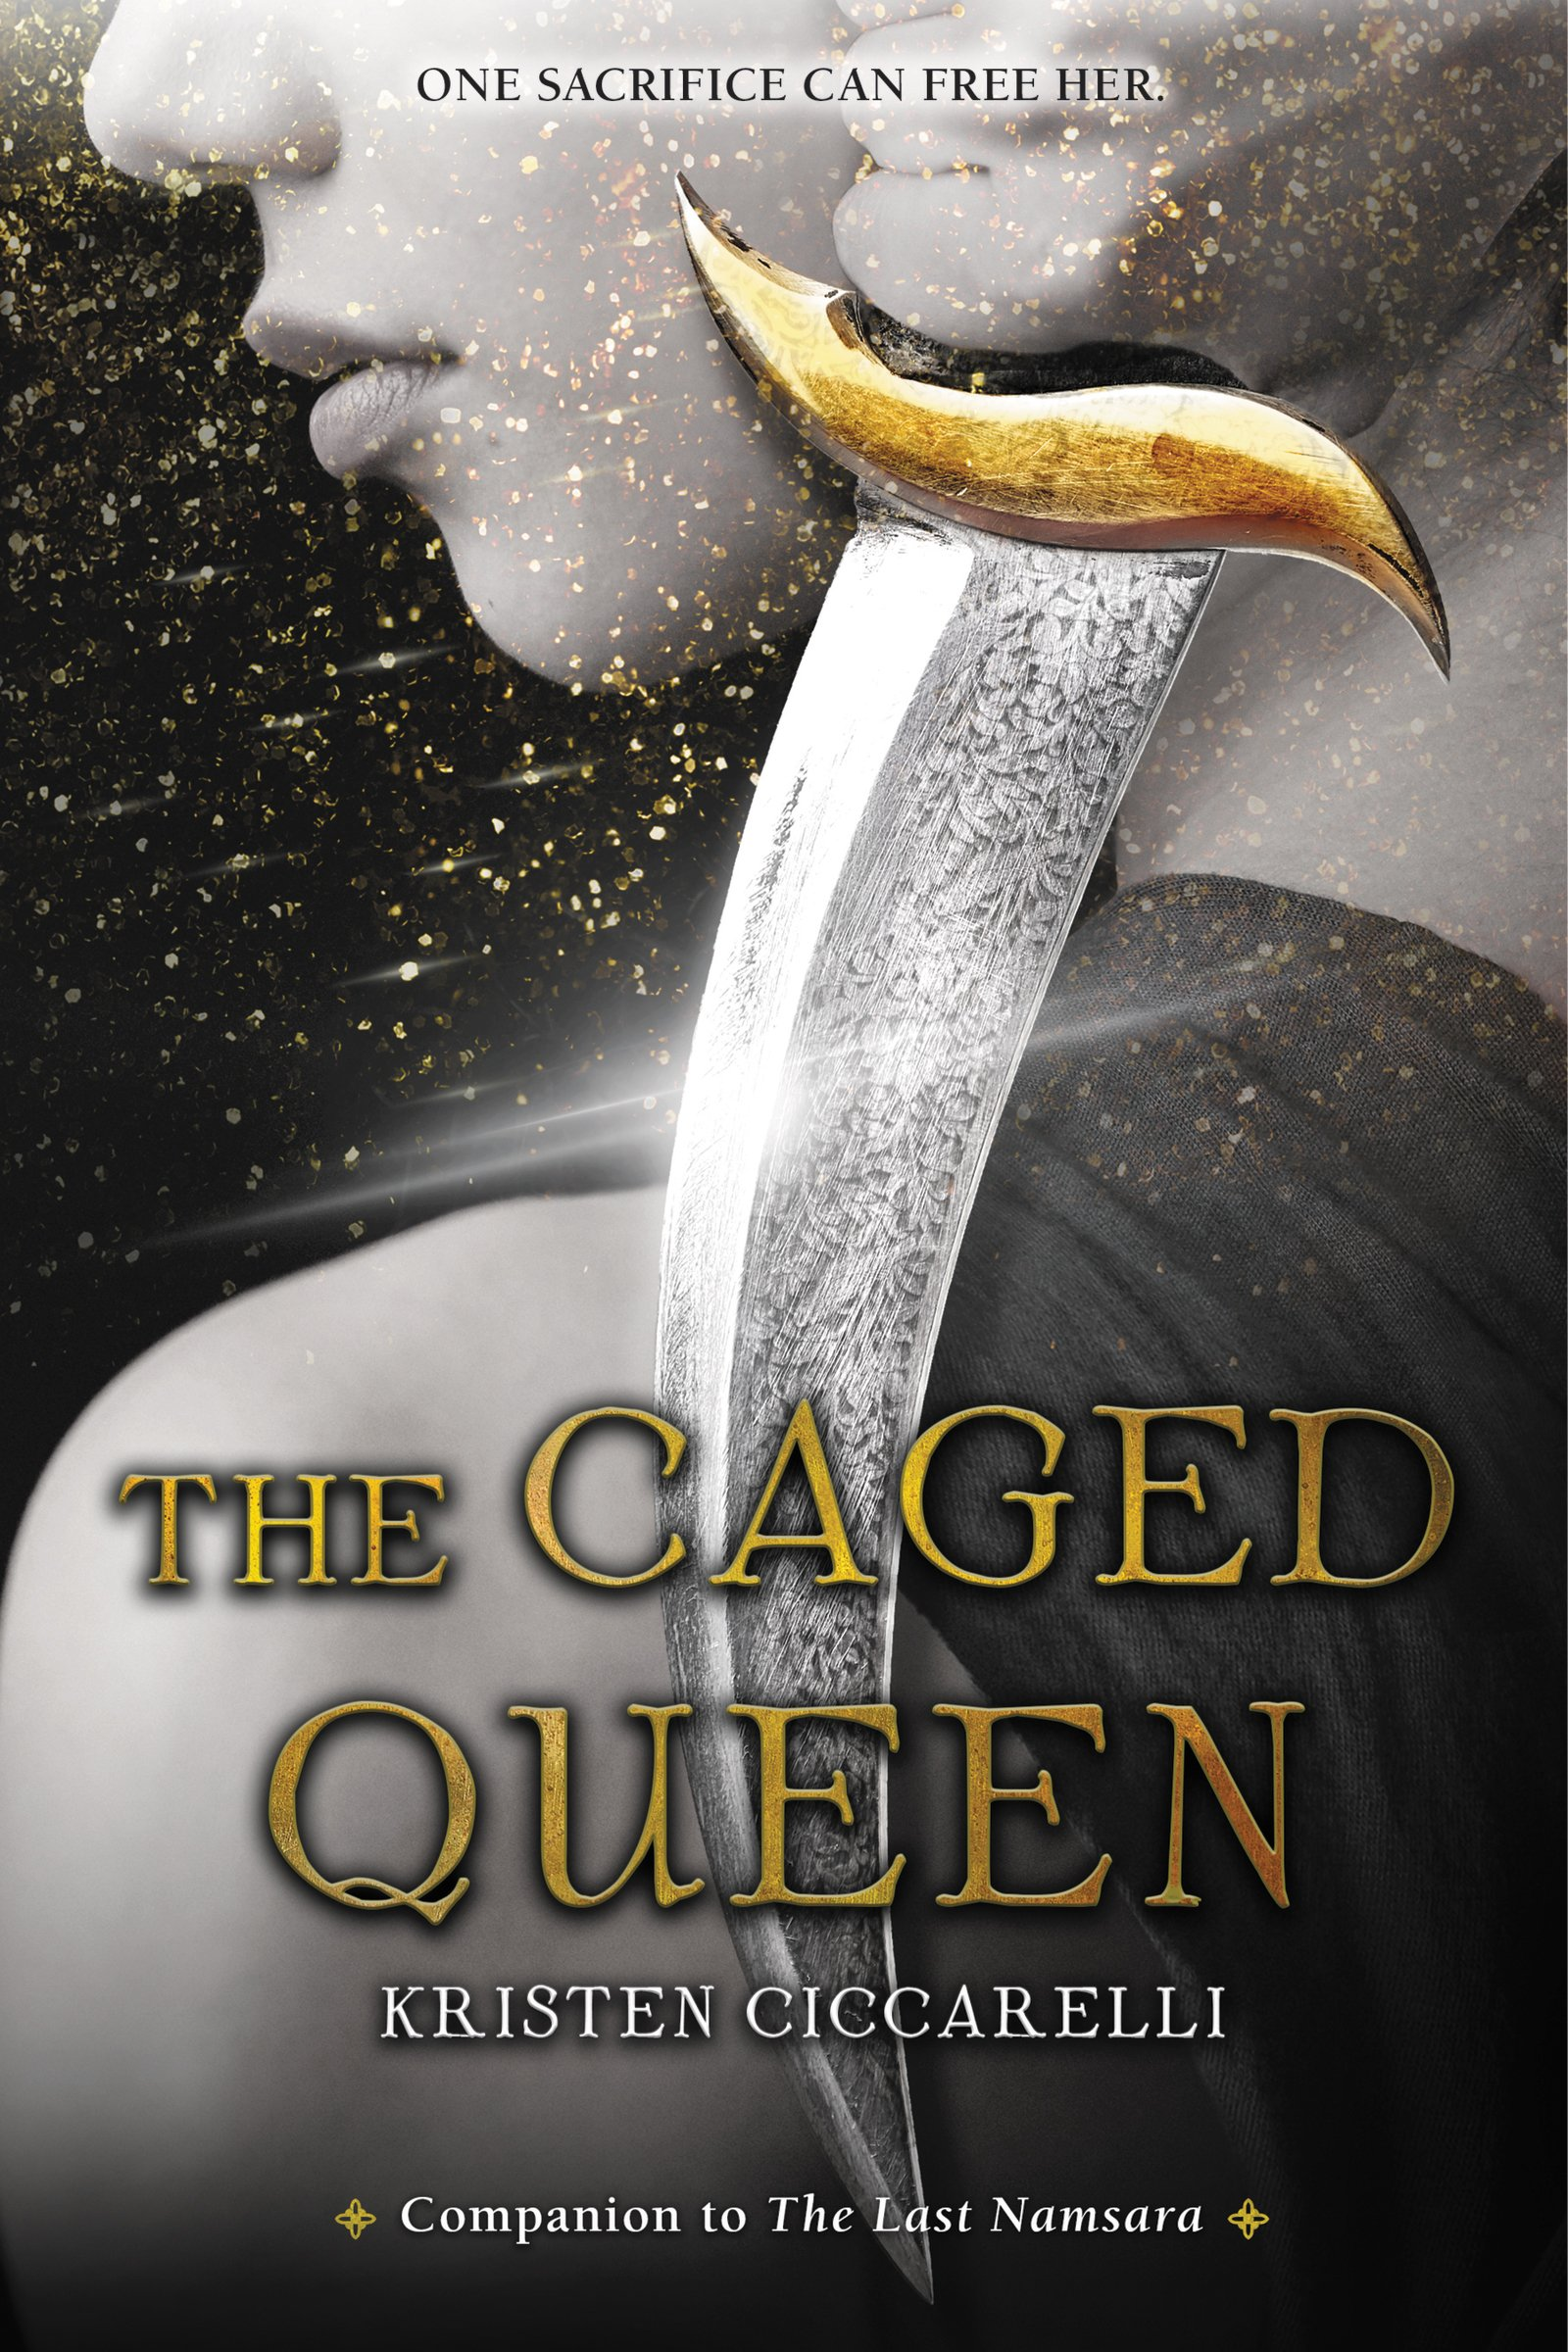 The Caged Queen by Kristen Ciccarelli